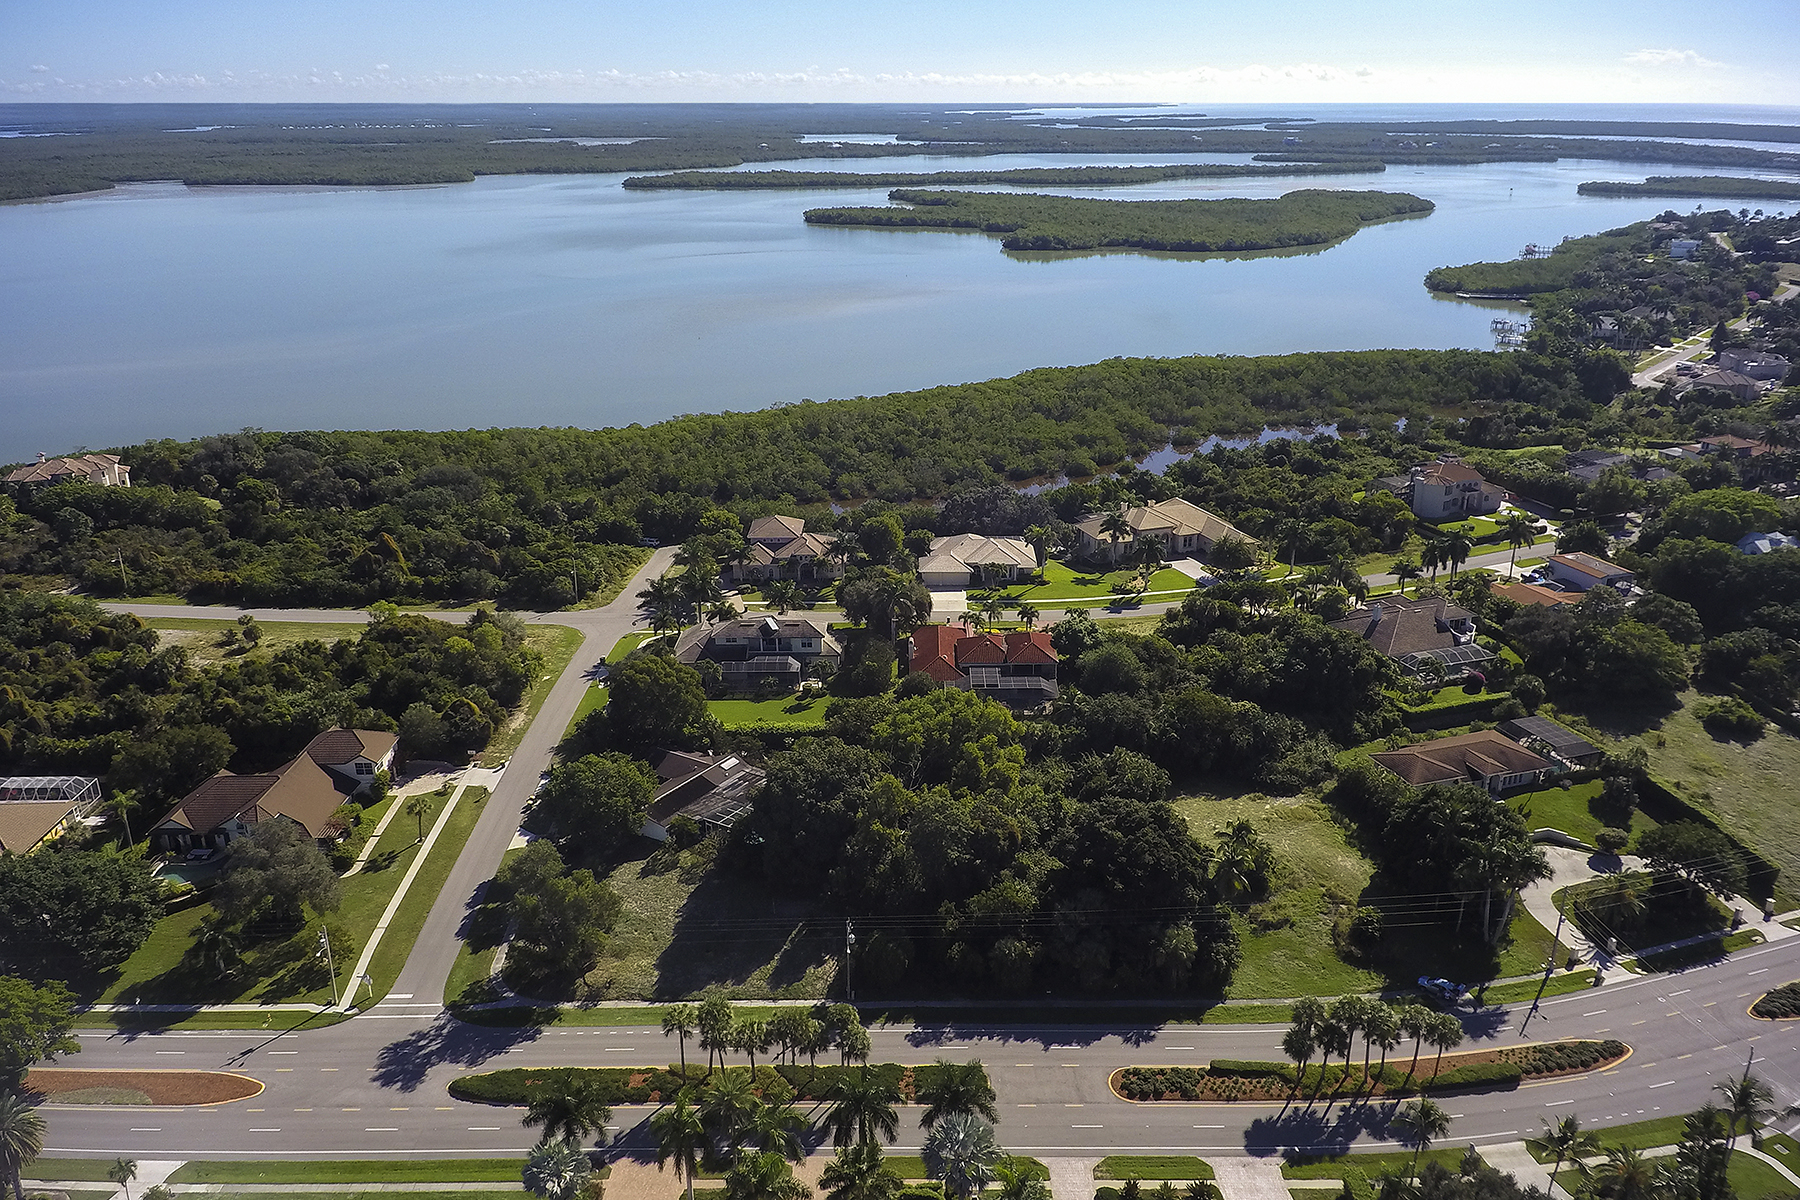 Land for Sale at MARCO ISLAND - S BARFIELD DRIVE 711 S Barfield Dr Marco Island, Florida, 34145 United States